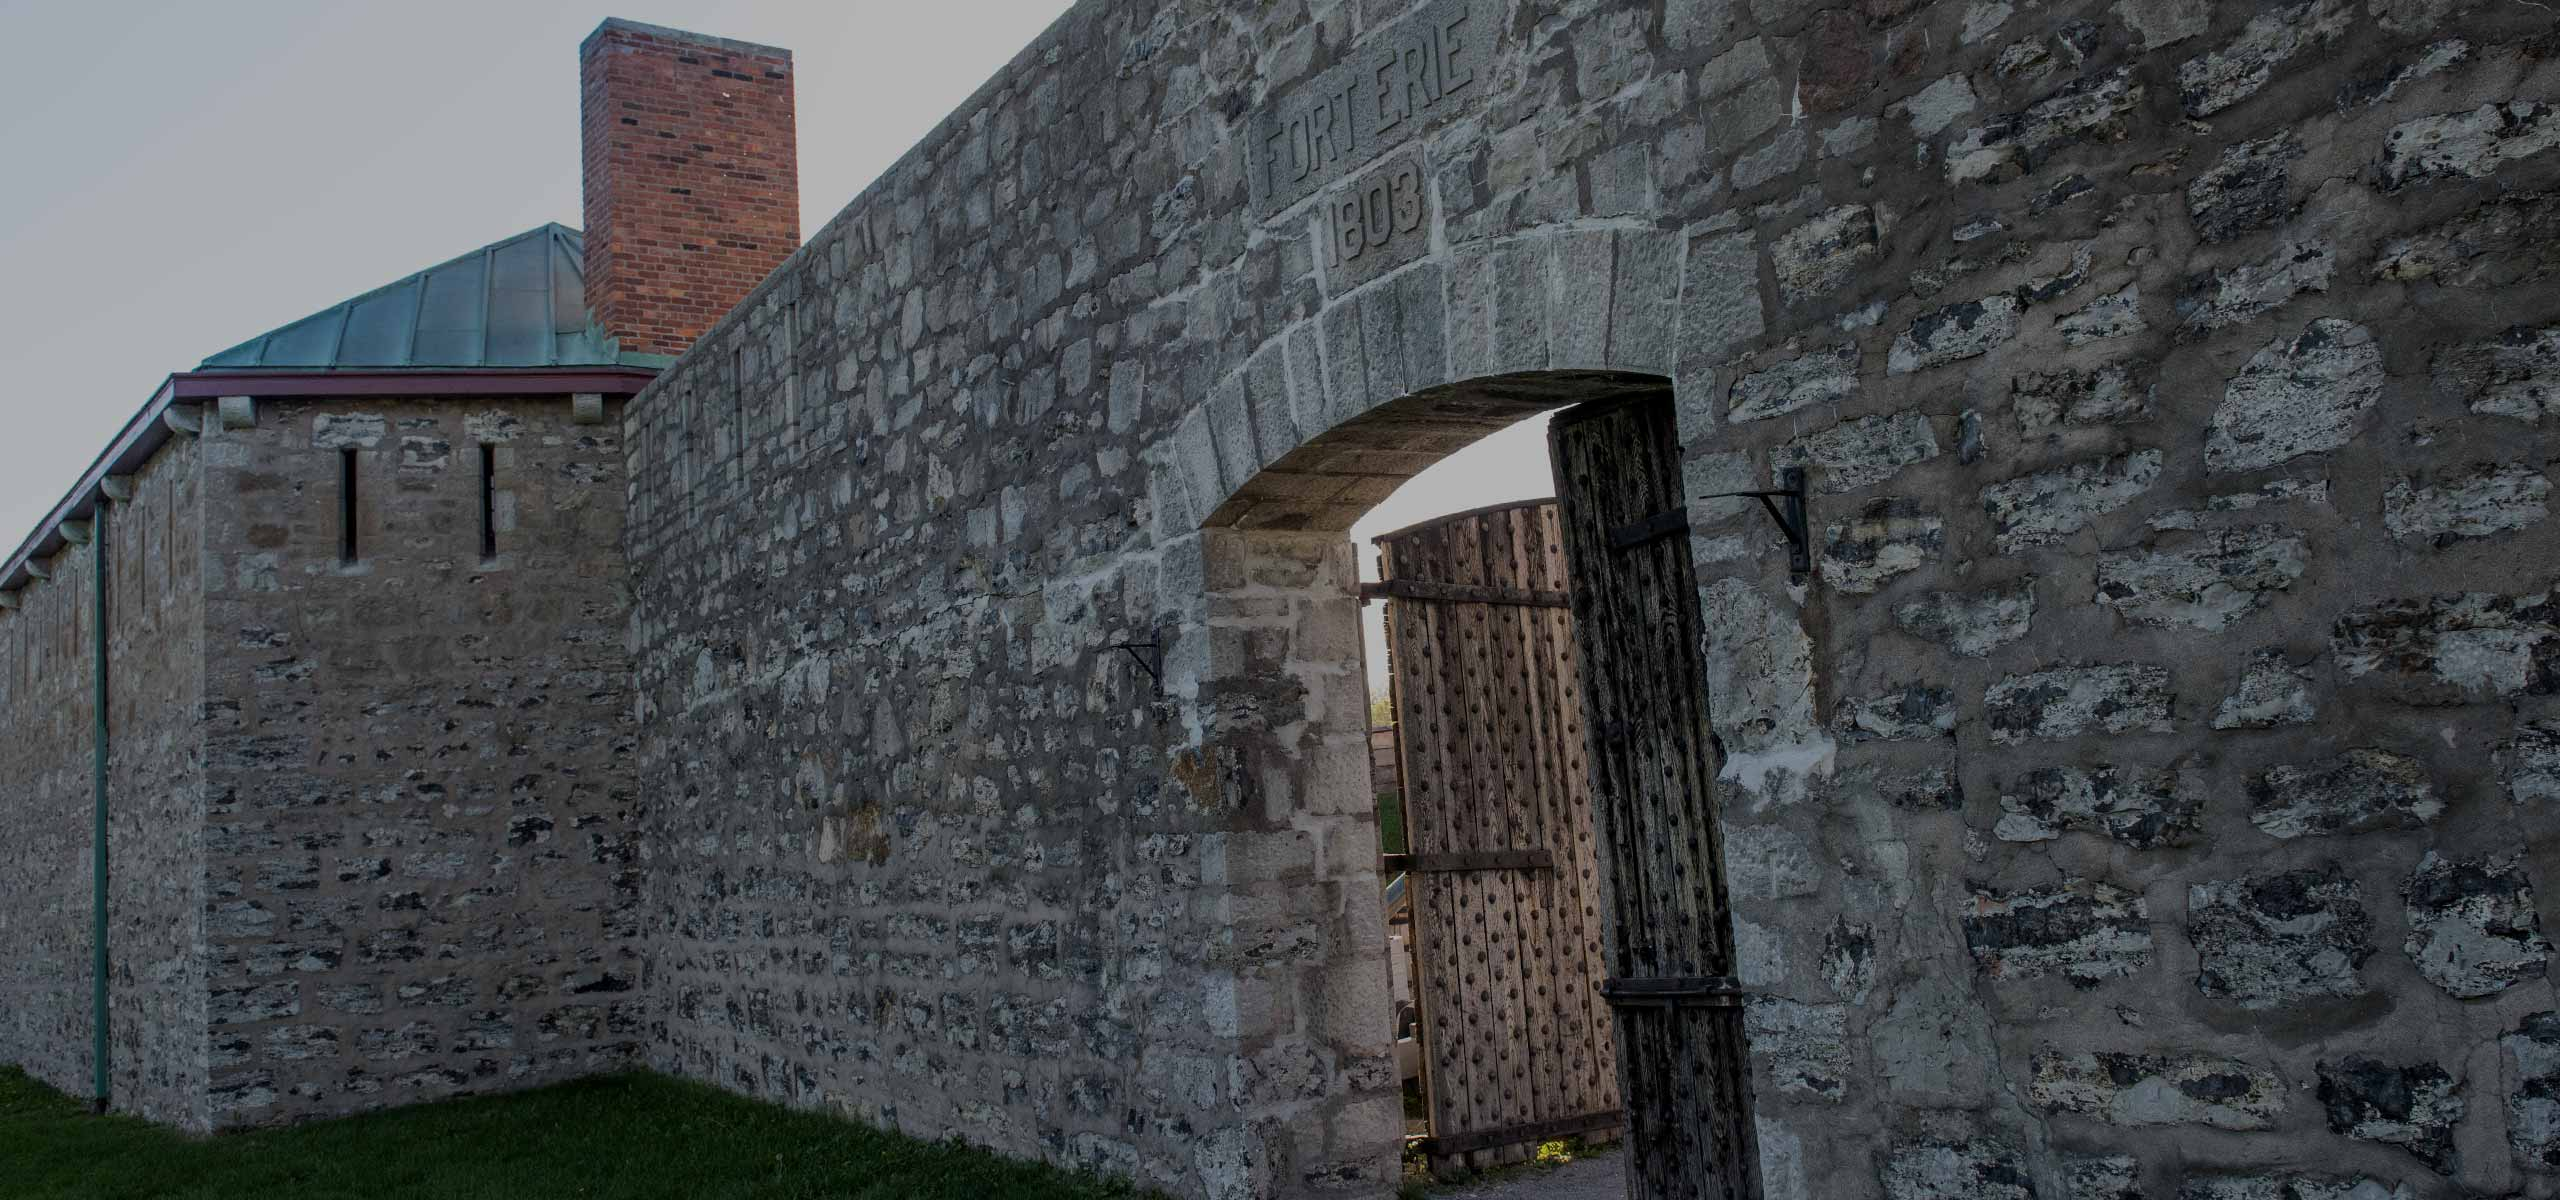 Speaker Series at Old Fort Erie